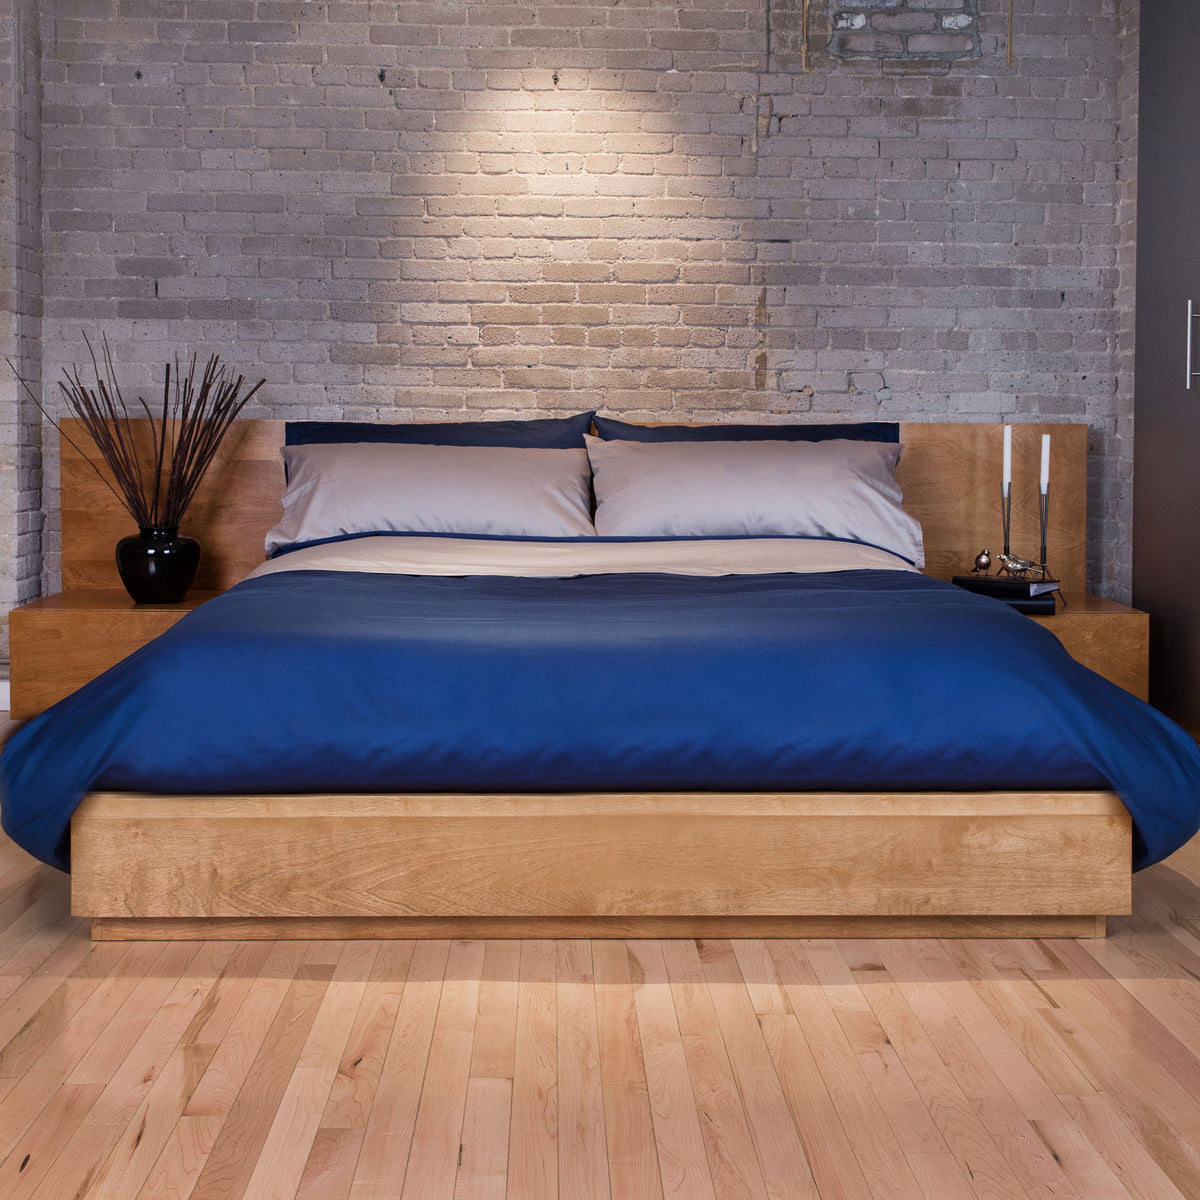 Sateen Bed Sheets Navy Blue Bed Brick Wall | Skylark+Owl Linen Co. | Skylark+Owl Linen Co.